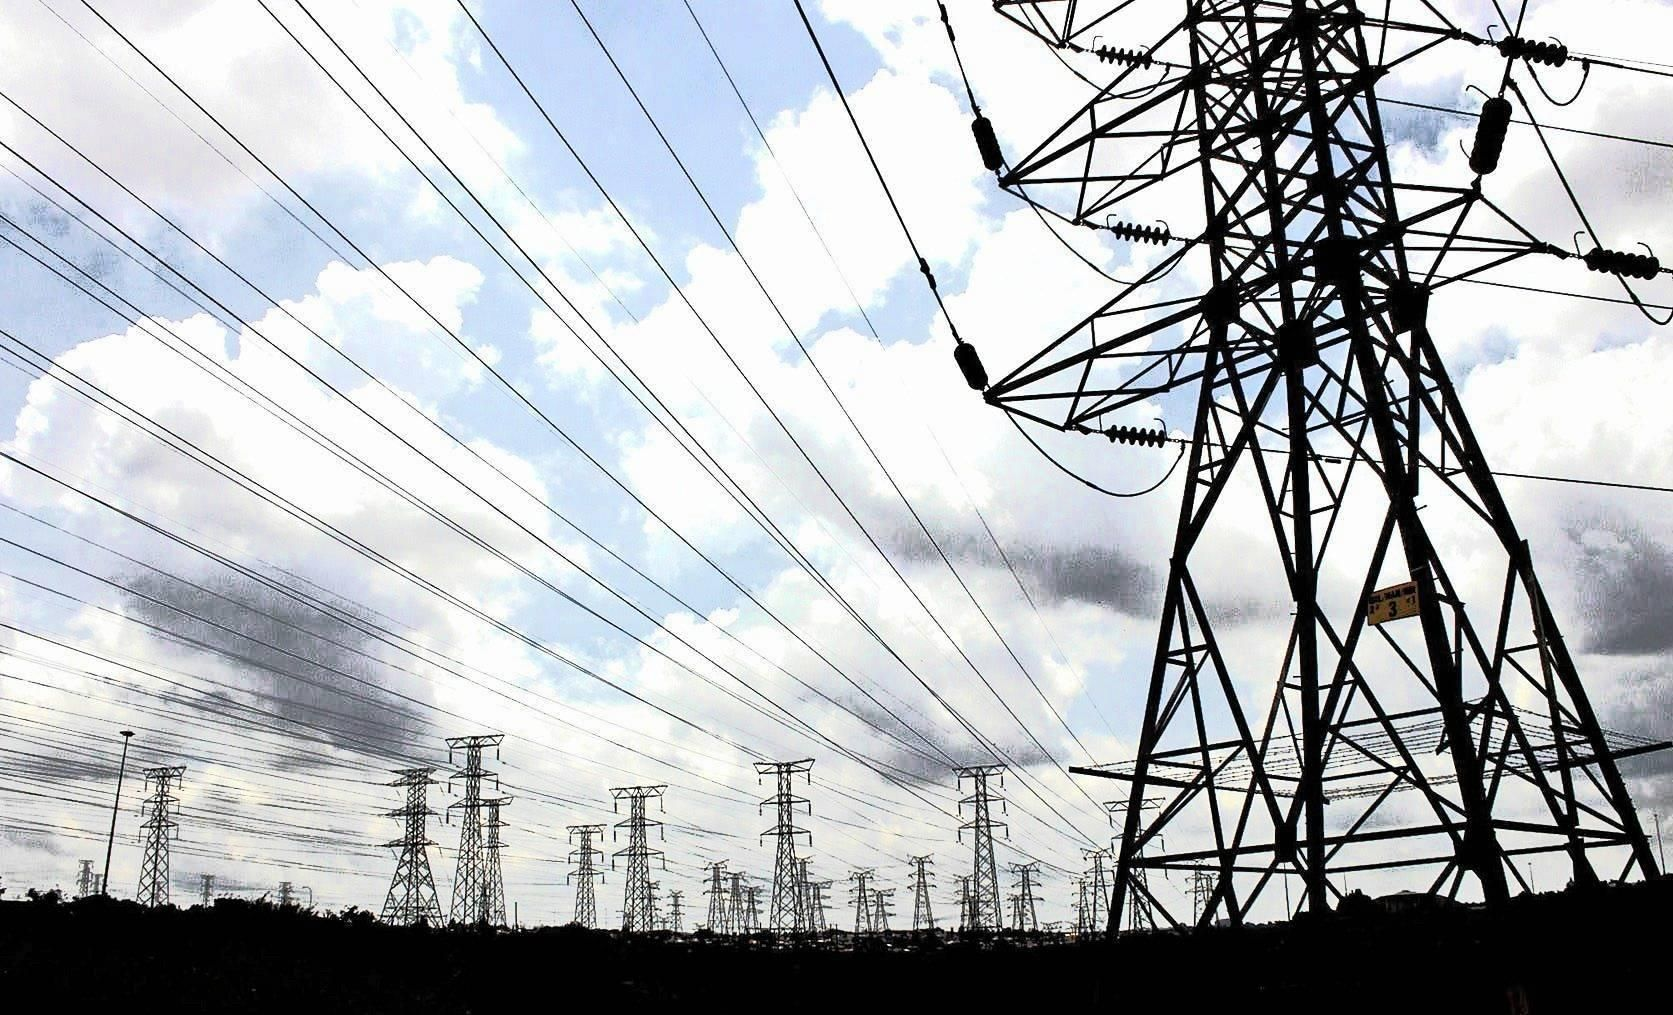 Eskom To Stop Loadshedding For Traffic Rush Hour In 2020 Energy Crisis Energy Industry Shed Plan